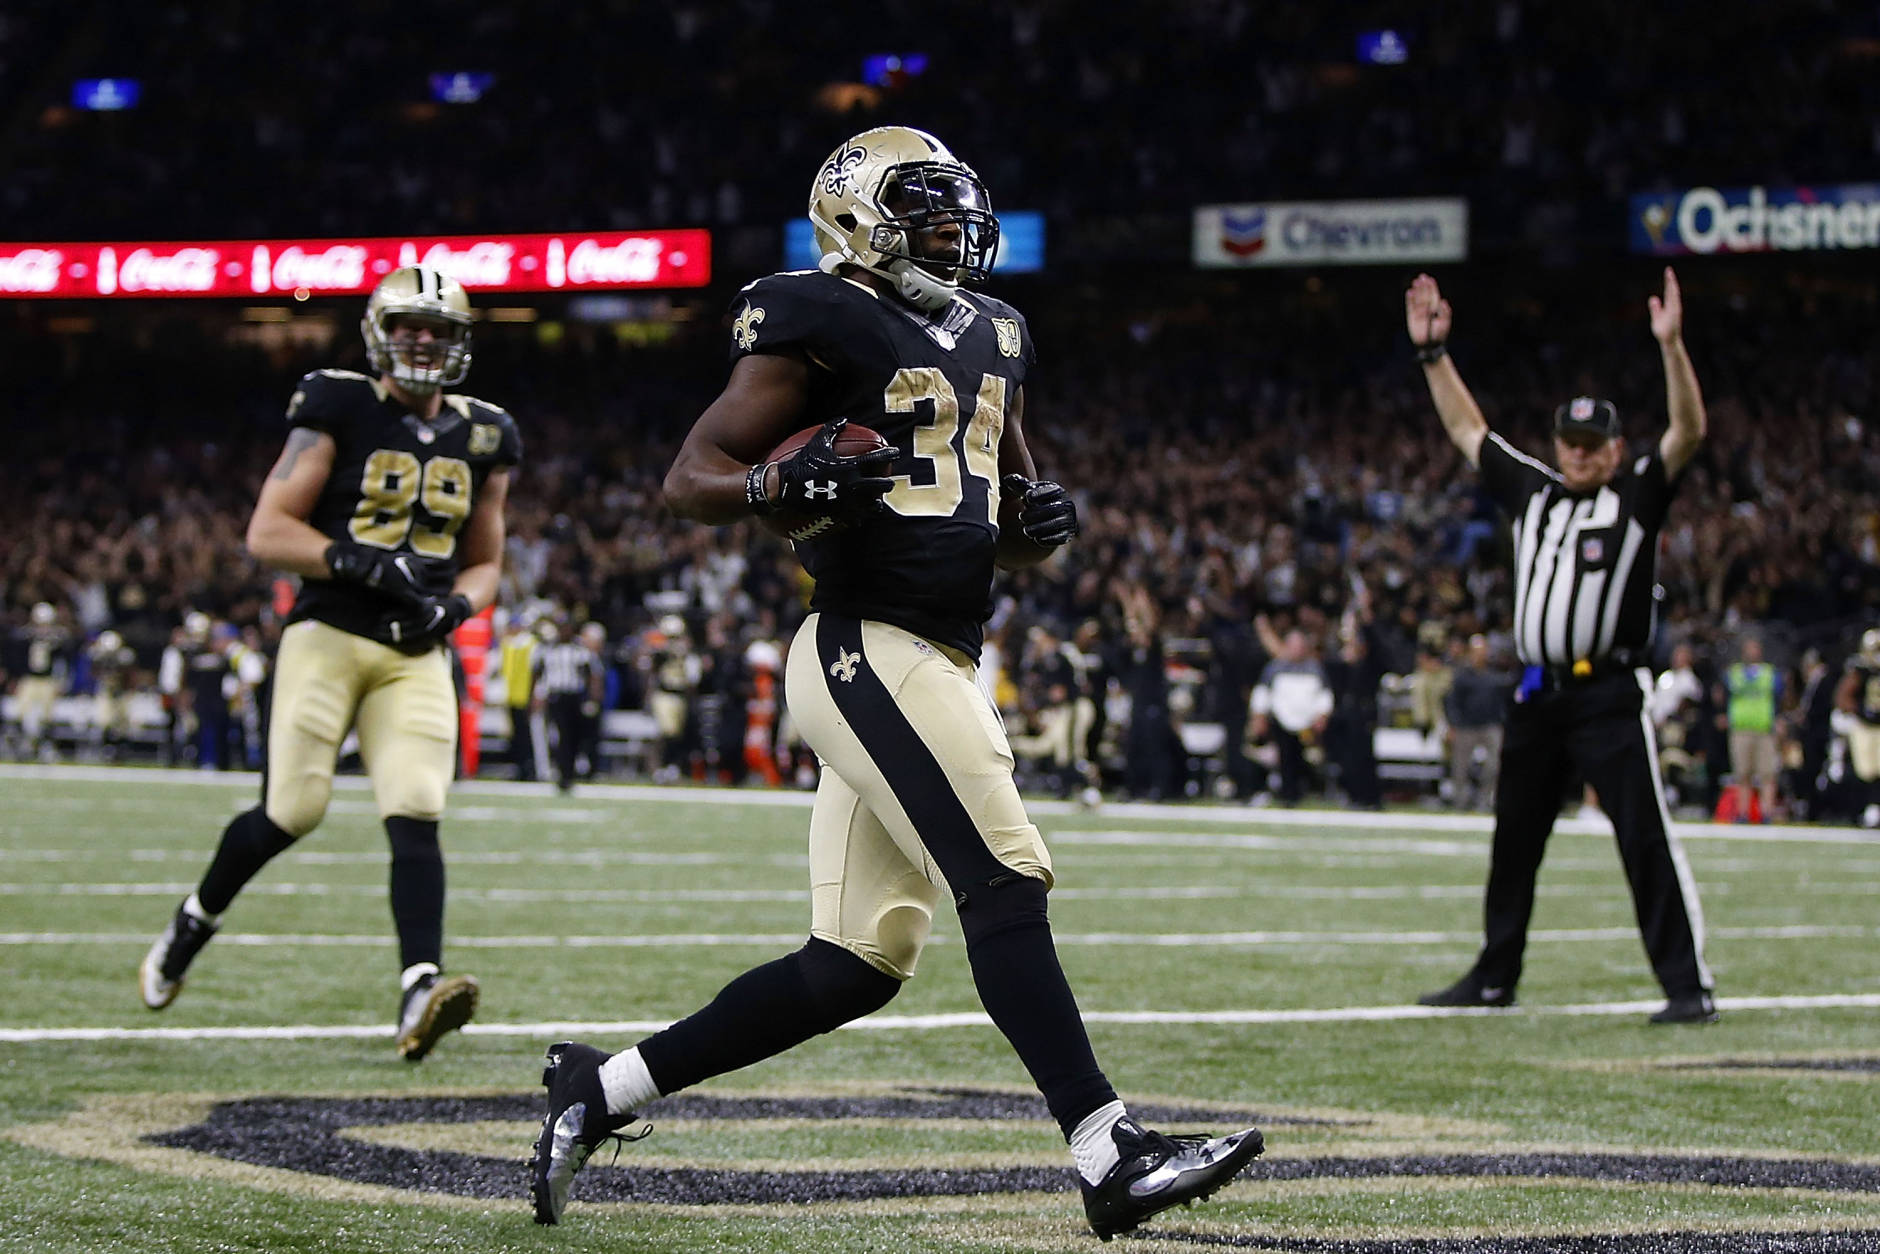 NEW ORLEANS, LA - NOVEMBER 27: Tim Hightower #34 of the New Orleans Saints scores a touchdown during the second half of a game against the Los Angeles Rams at the Mercedes-Benz Superdome on November 27, 2016 in New Orleans, Louisiana.  (Photo by Sean Gardner/Getty Images)